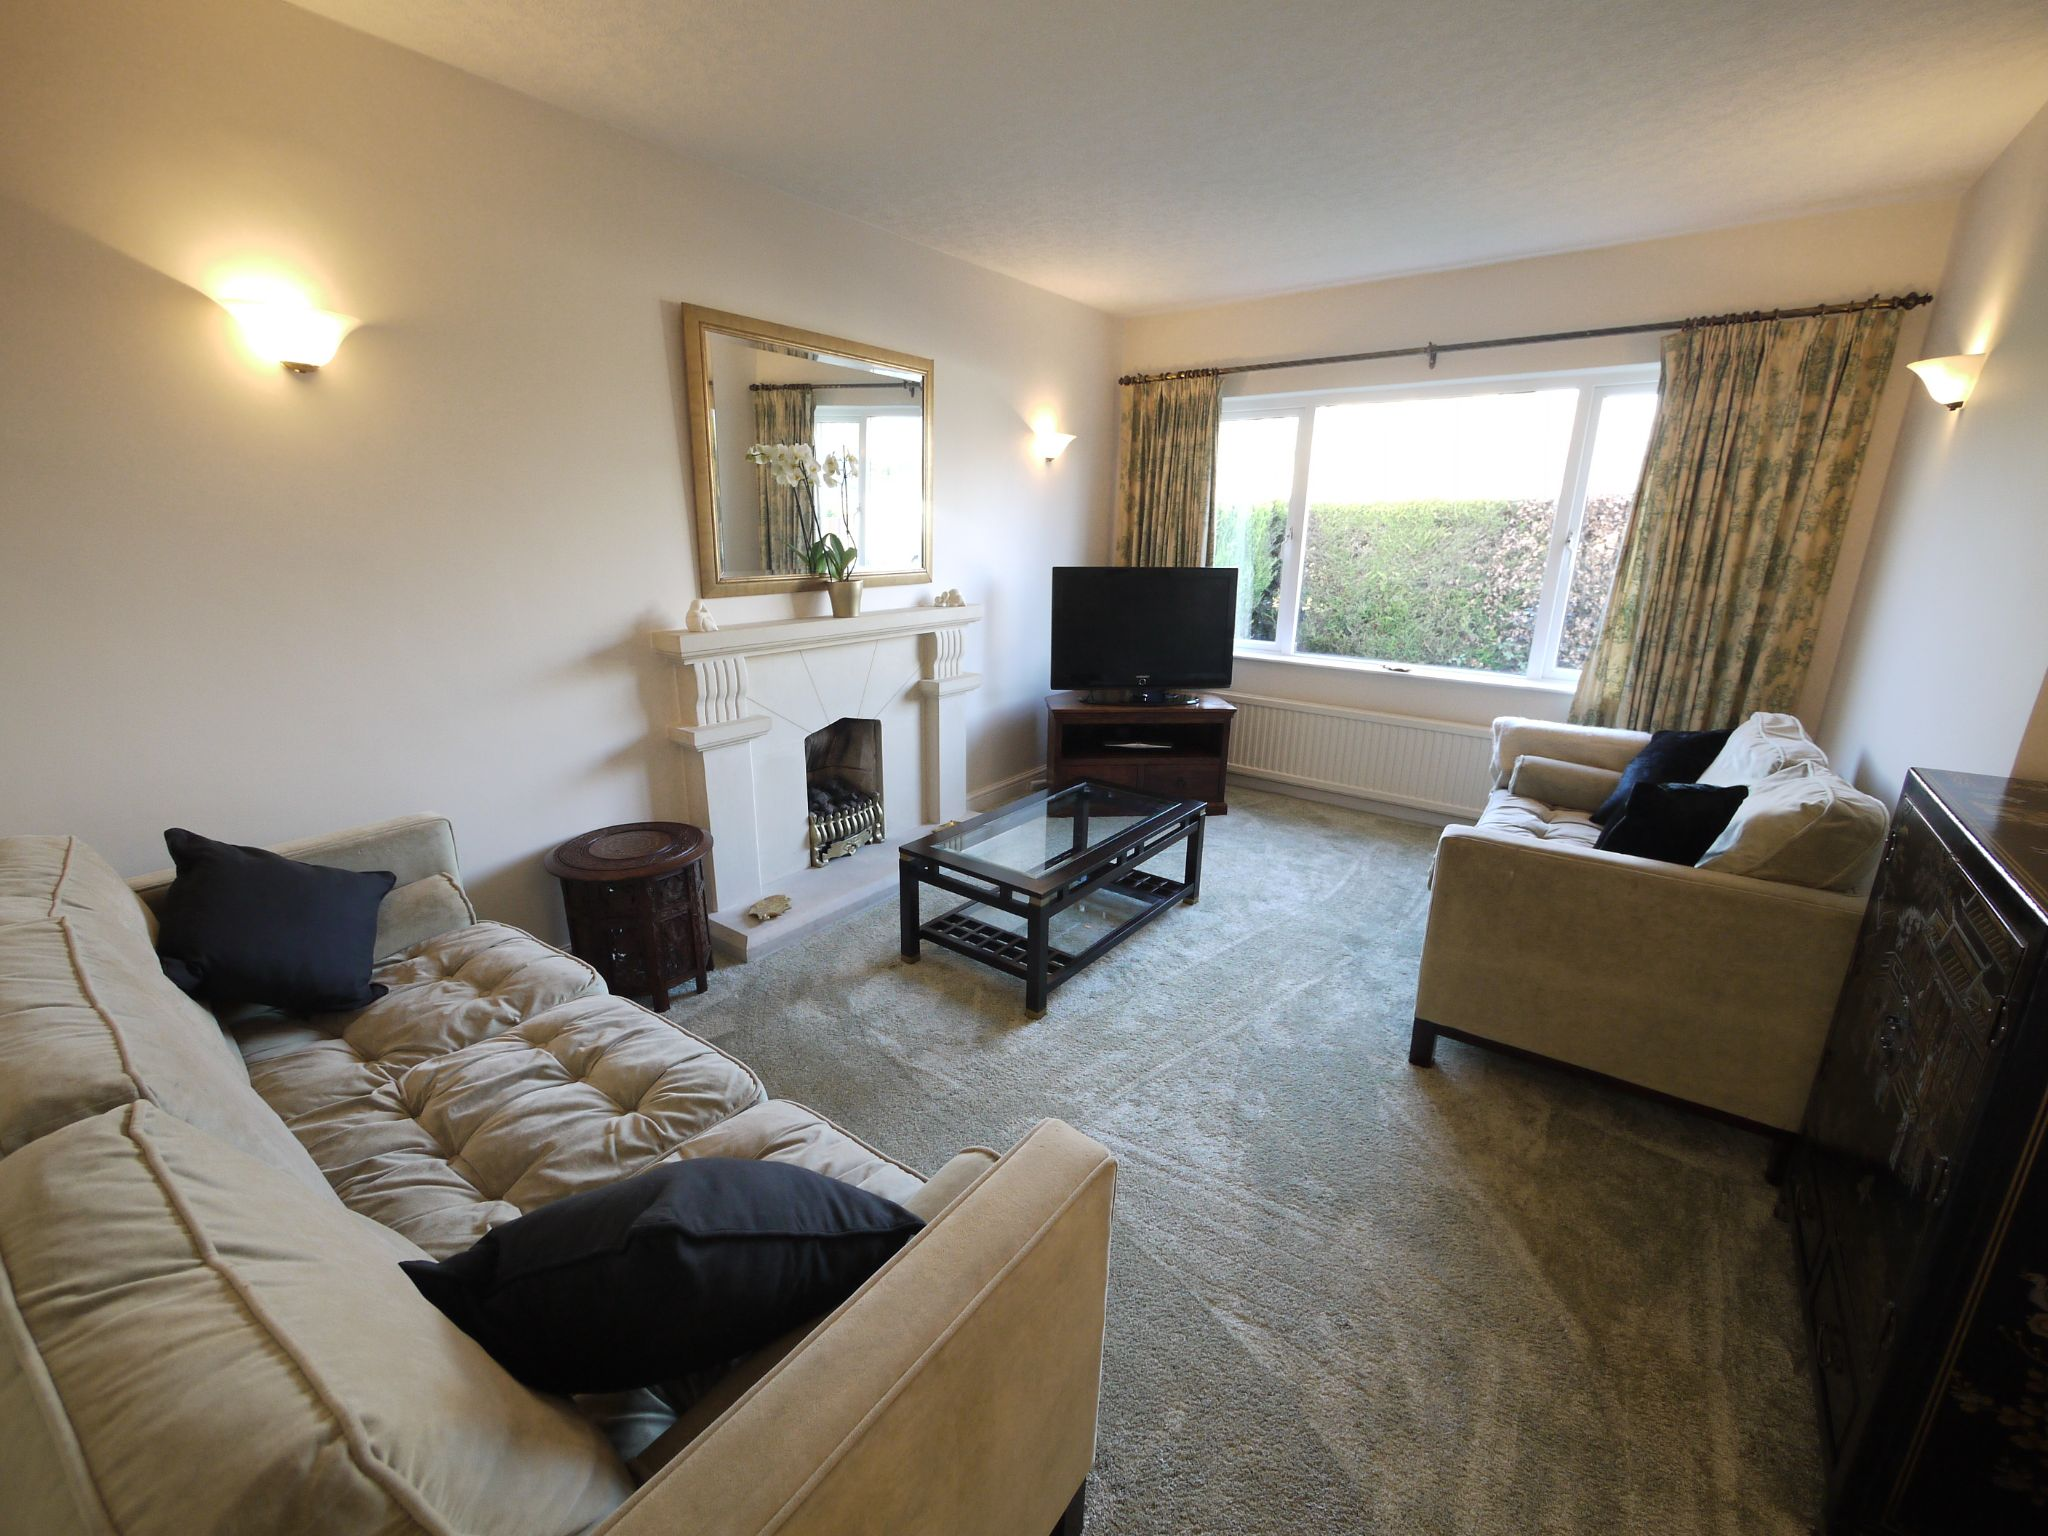 5 bedroom detached bungalow For Sale in Brighouse - lounge.